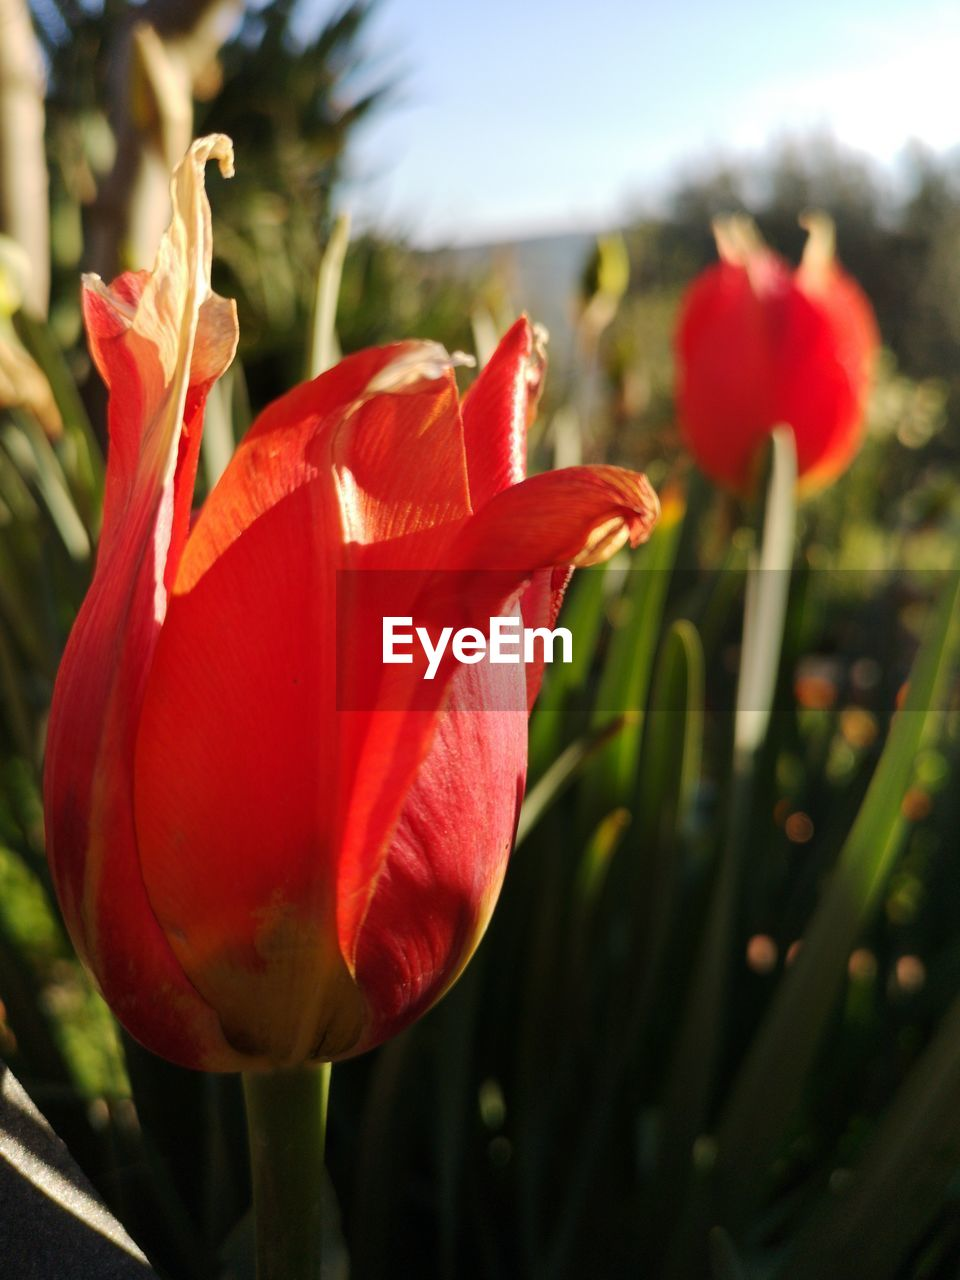 flower, flowering plant, plant, beauty in nature, petal, fragility, freshness, vulnerability, red, growth, close-up, flower head, inflorescence, nature, focus on foreground, no people, day, botany, plant stem, tulip, outdoors, springtime, sepal